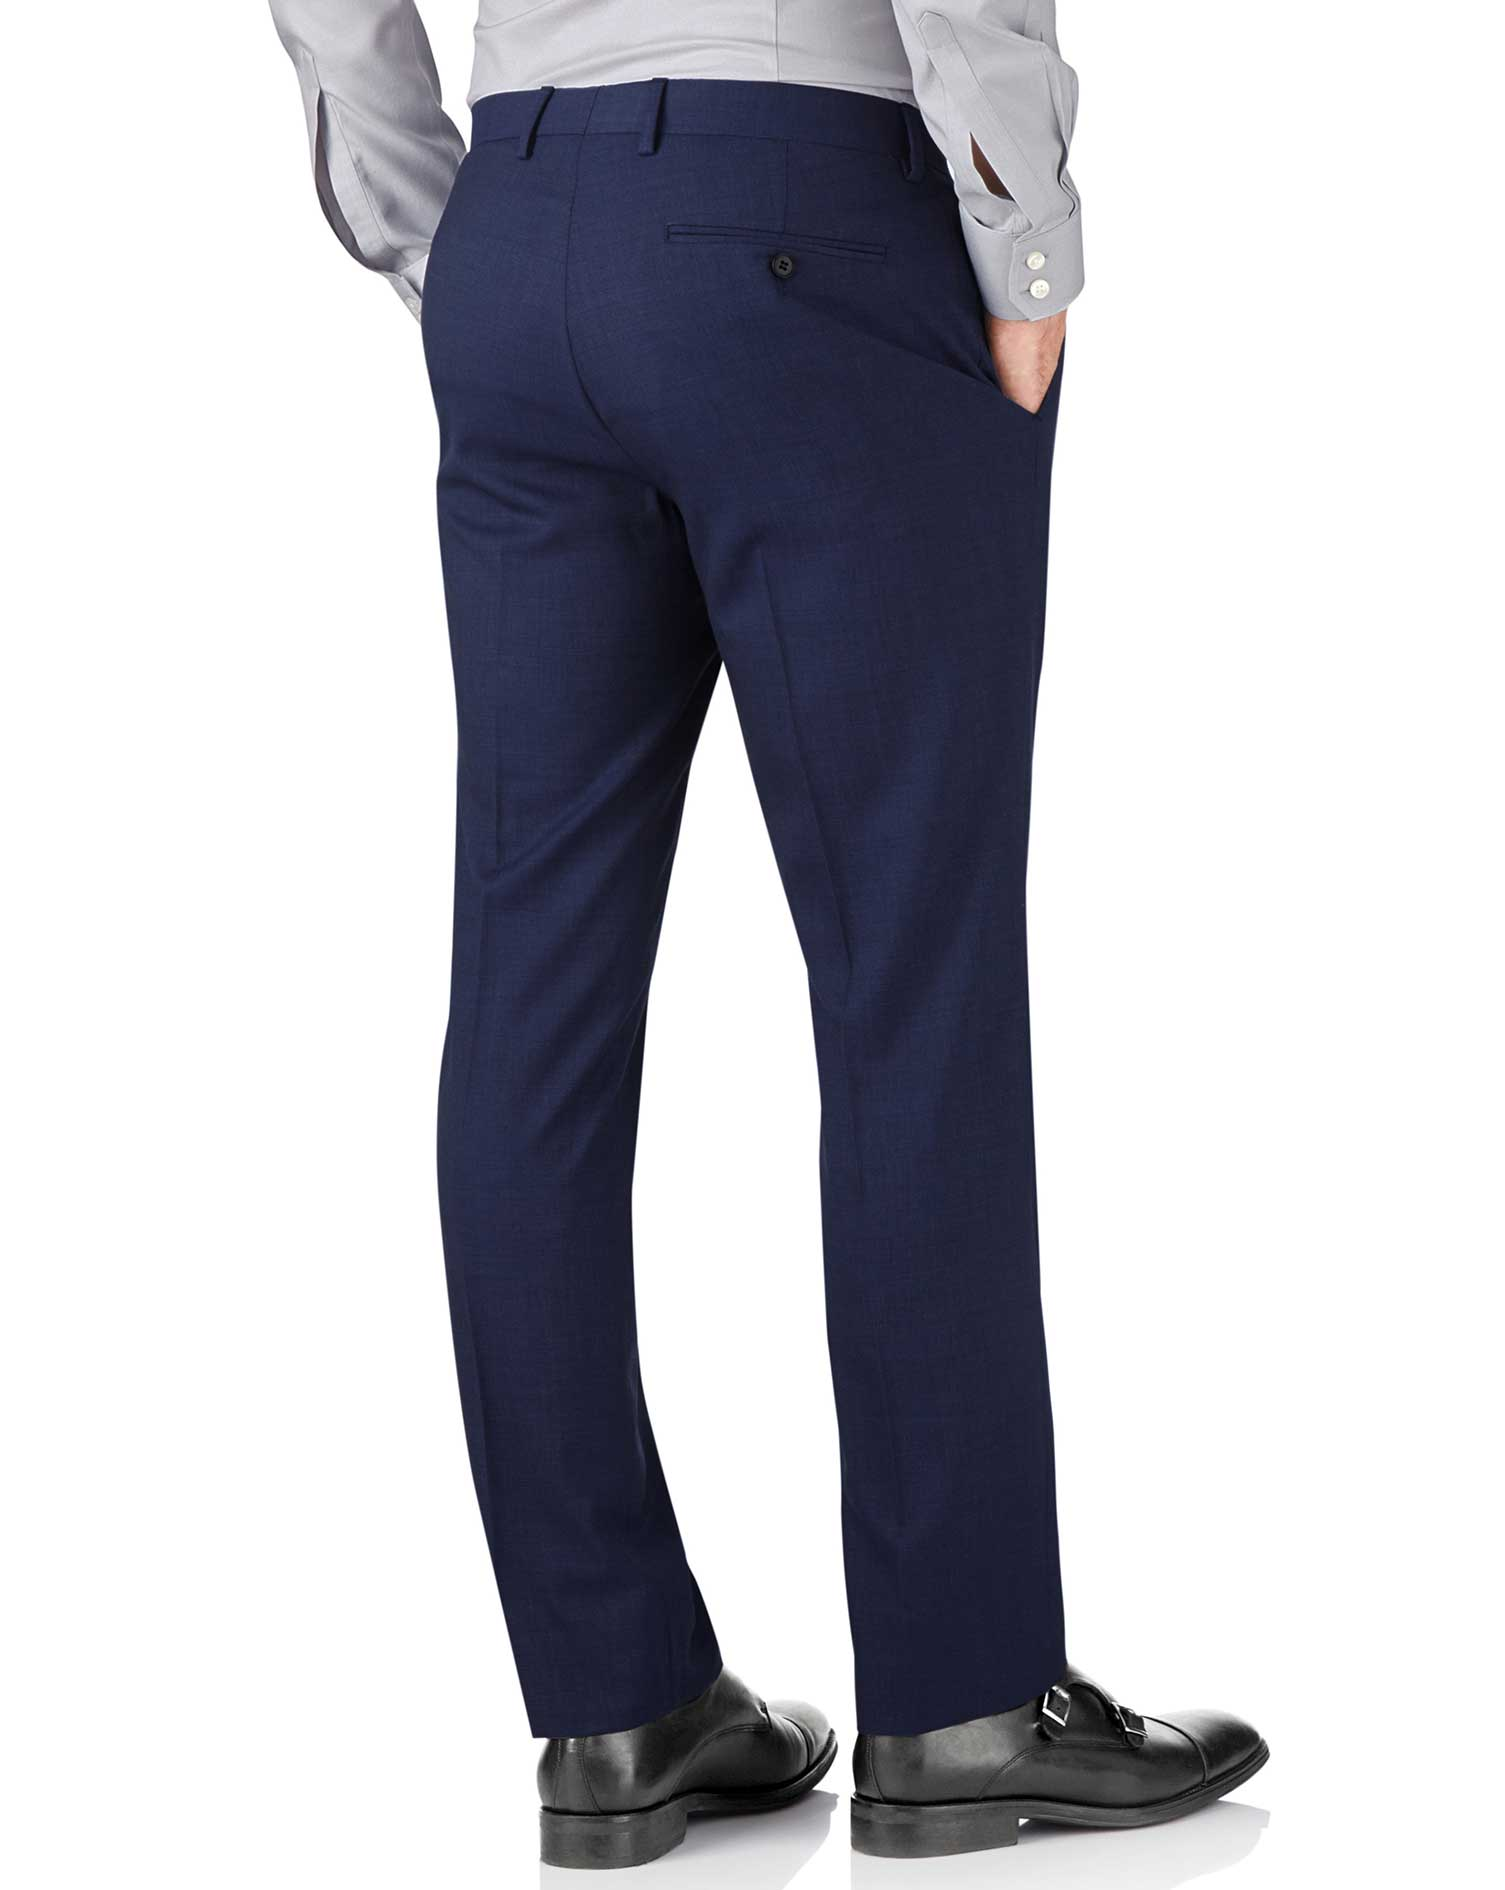 Indigo slim fit end-on-end business suit pants